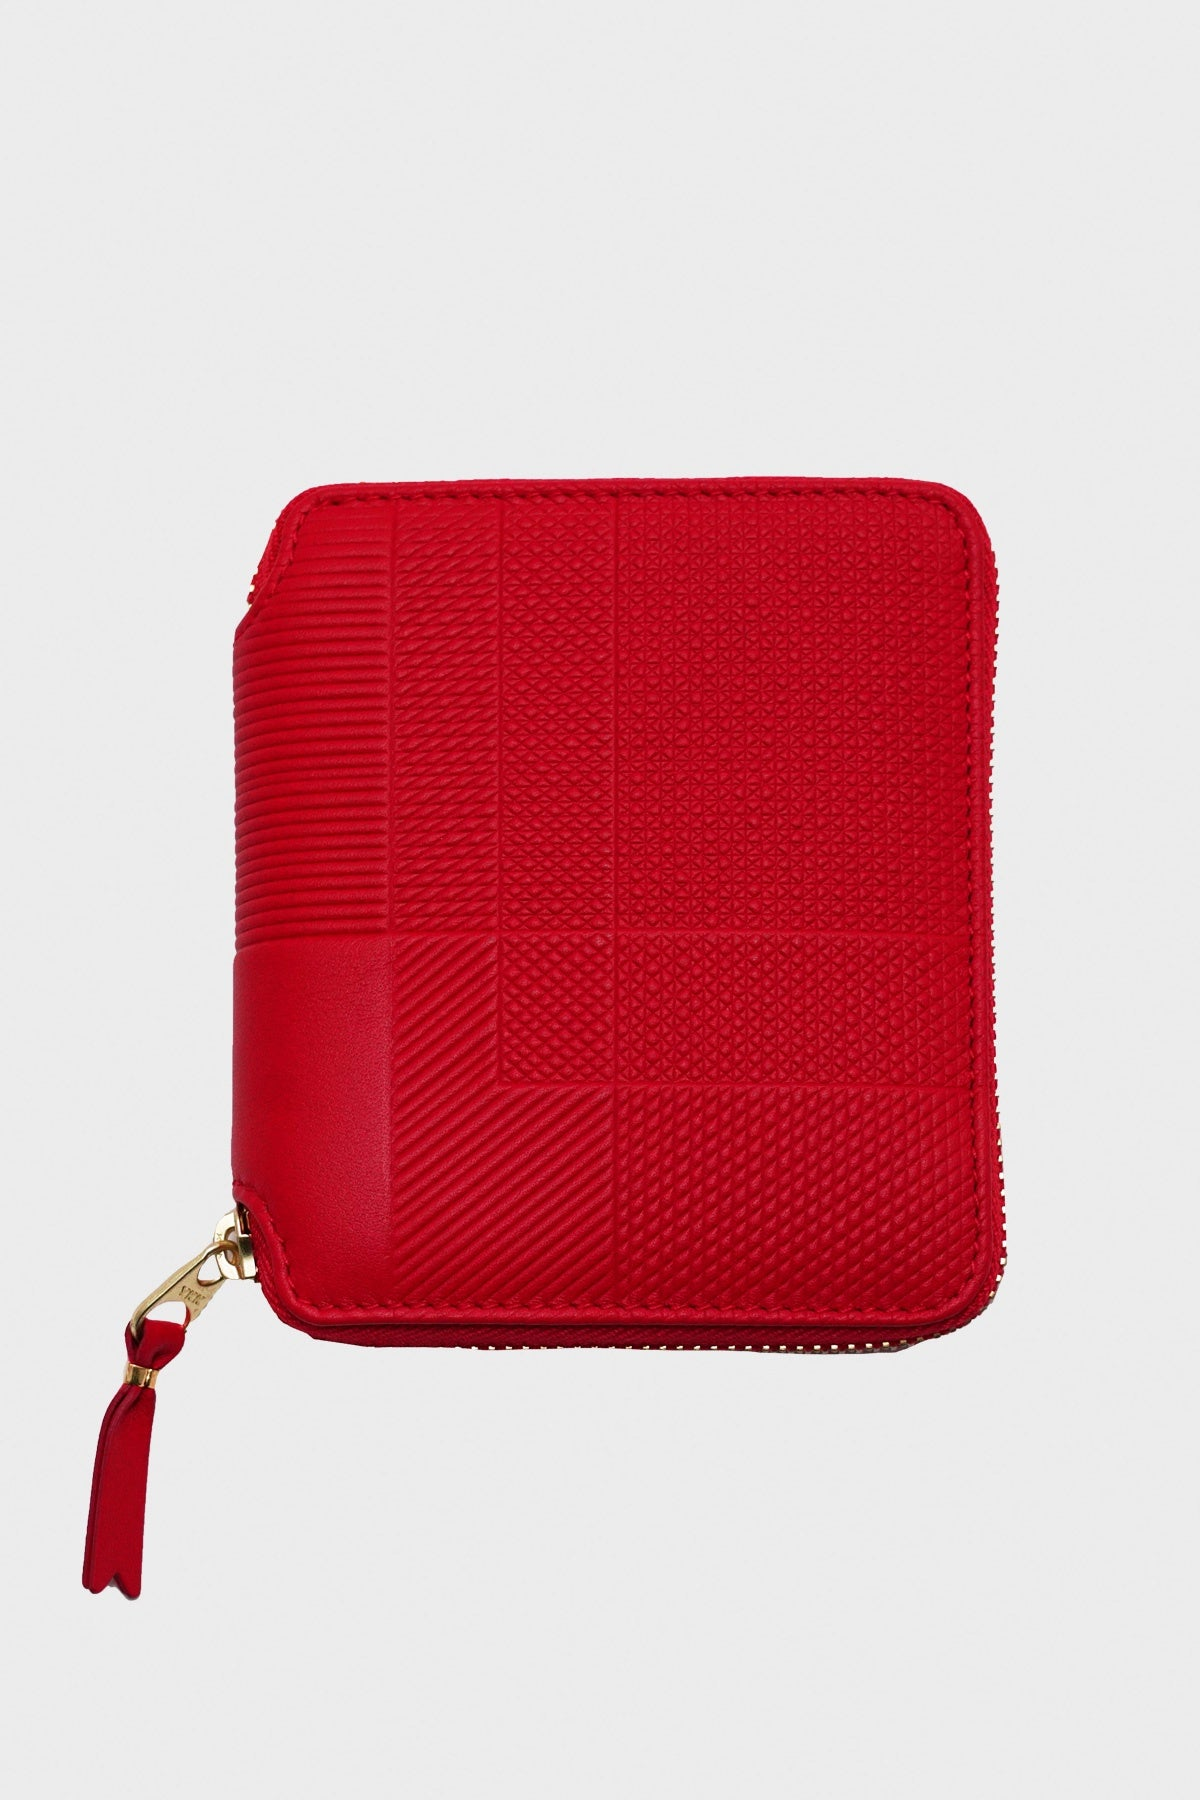 Comme des Garçons WALLET - Intersection Wallet - Red - Canoe Club